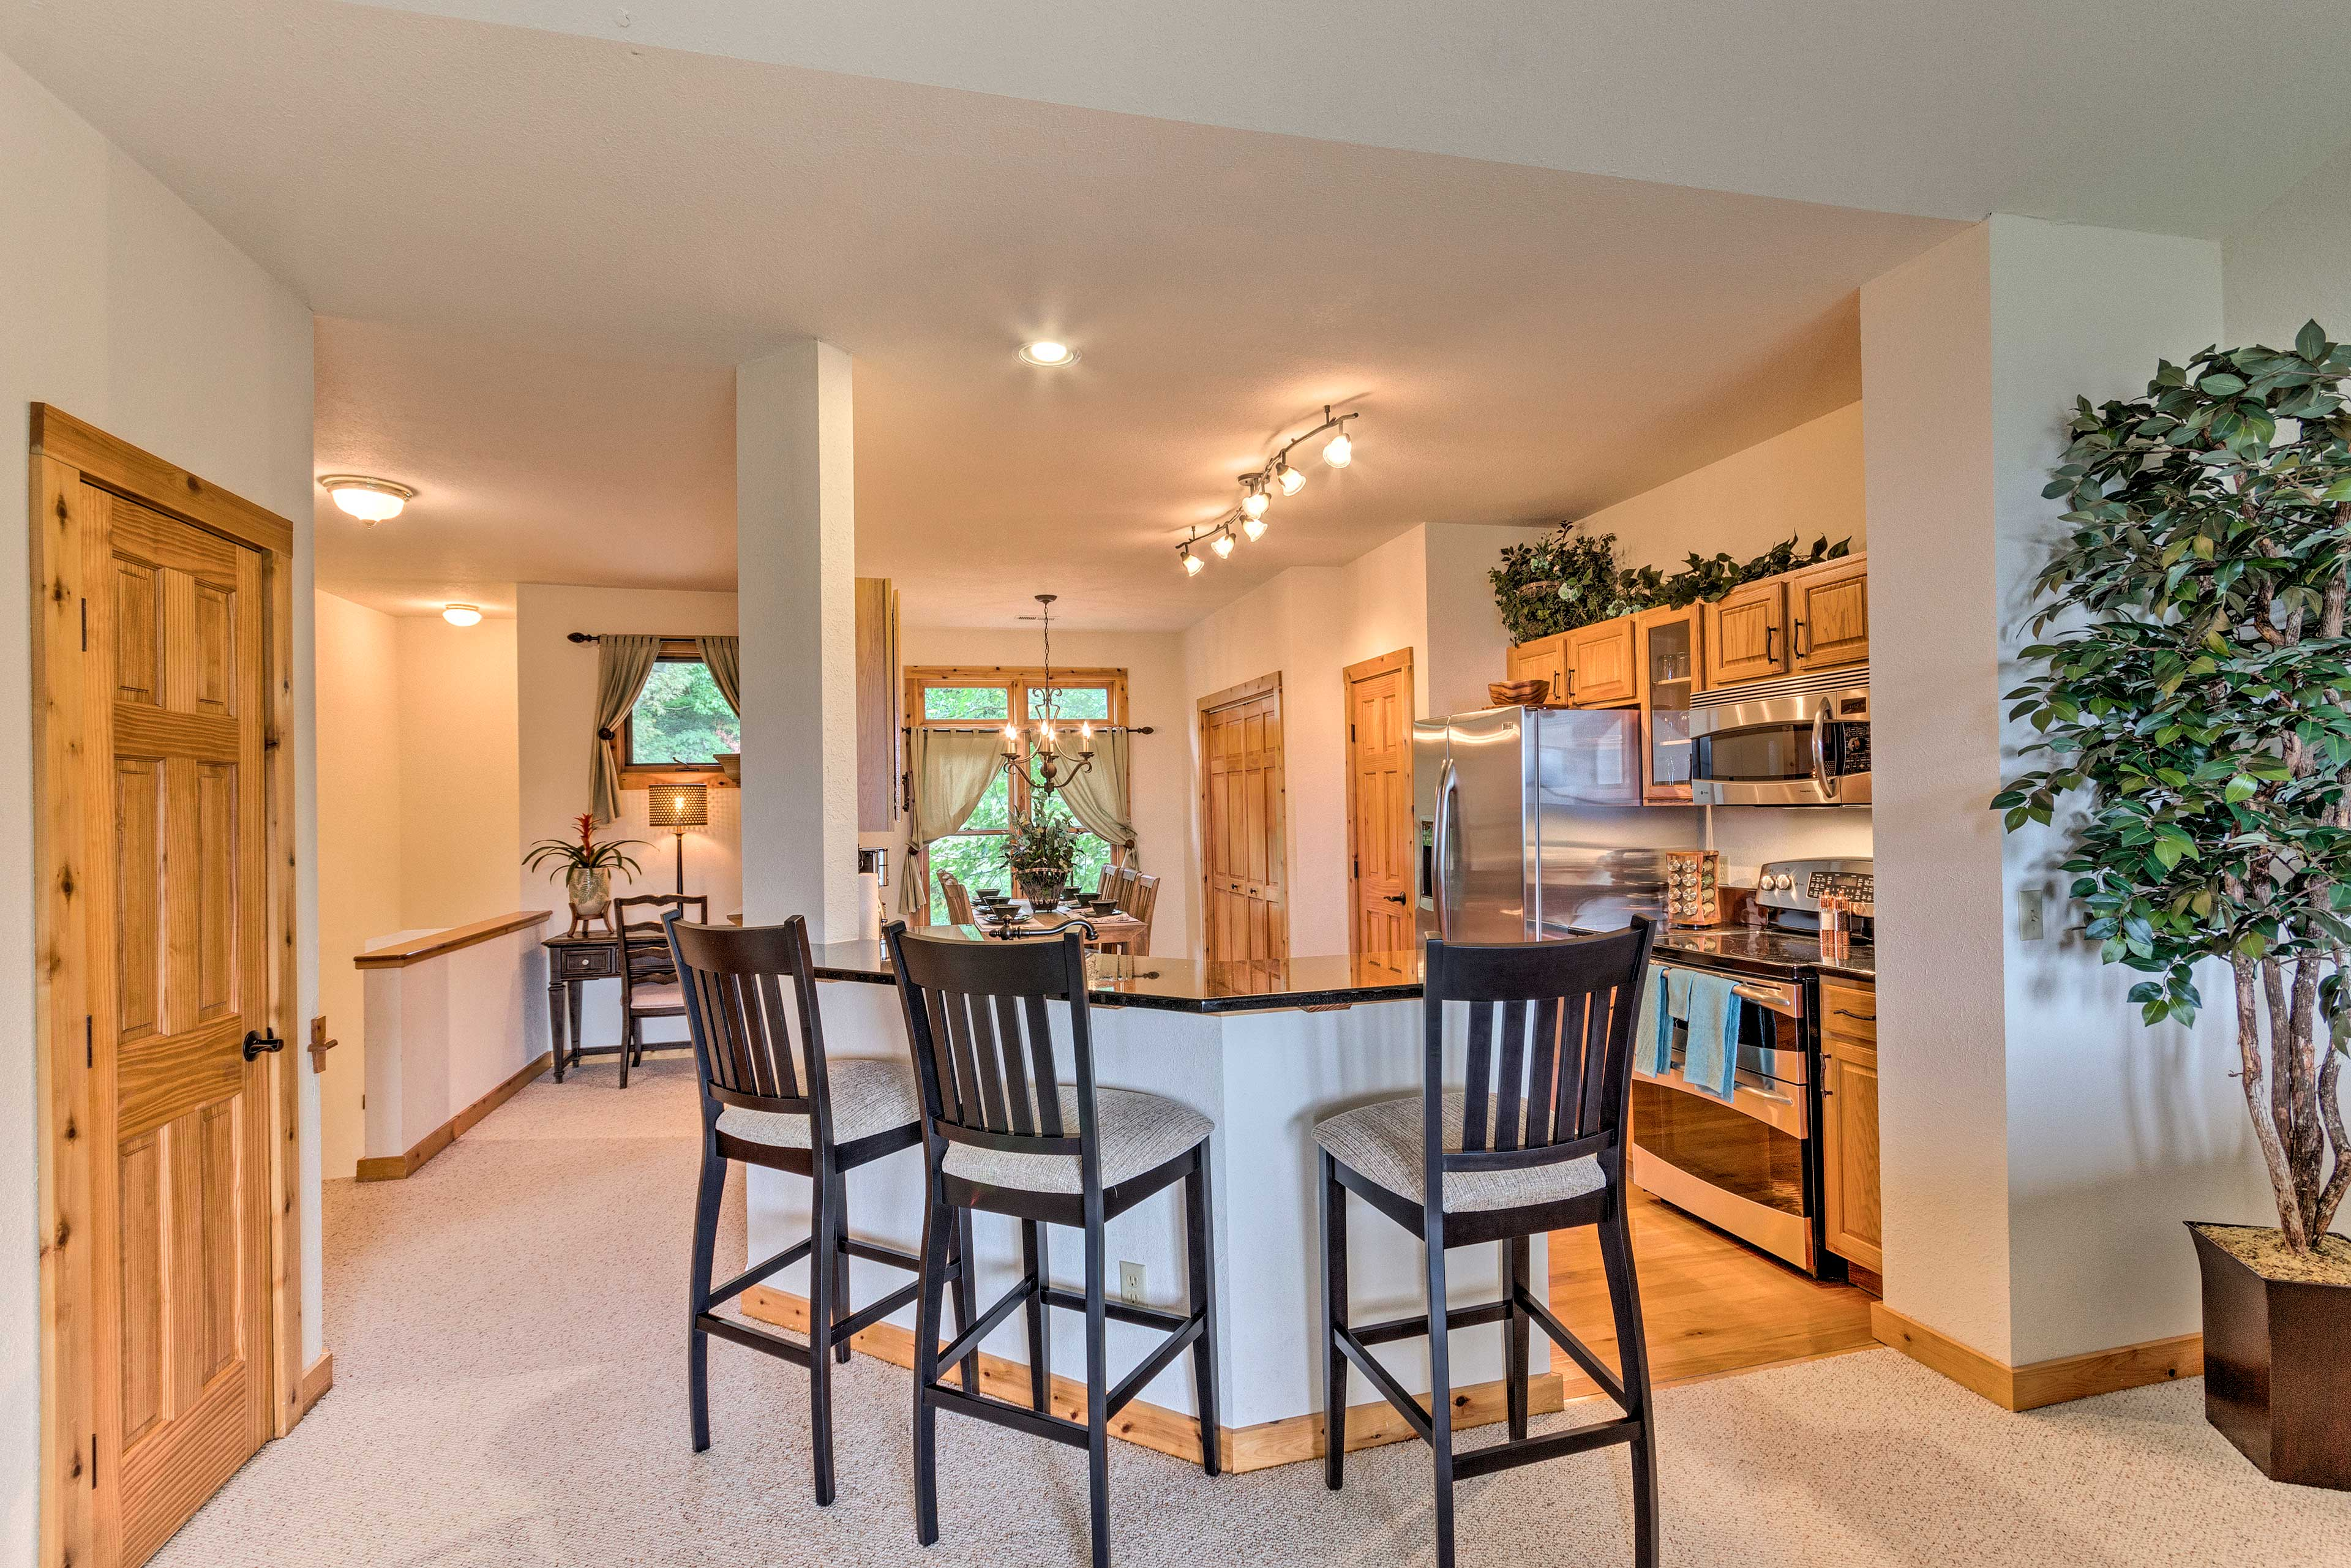 A high-top breakfast bar and stainless steel appliances complete this kitchen.